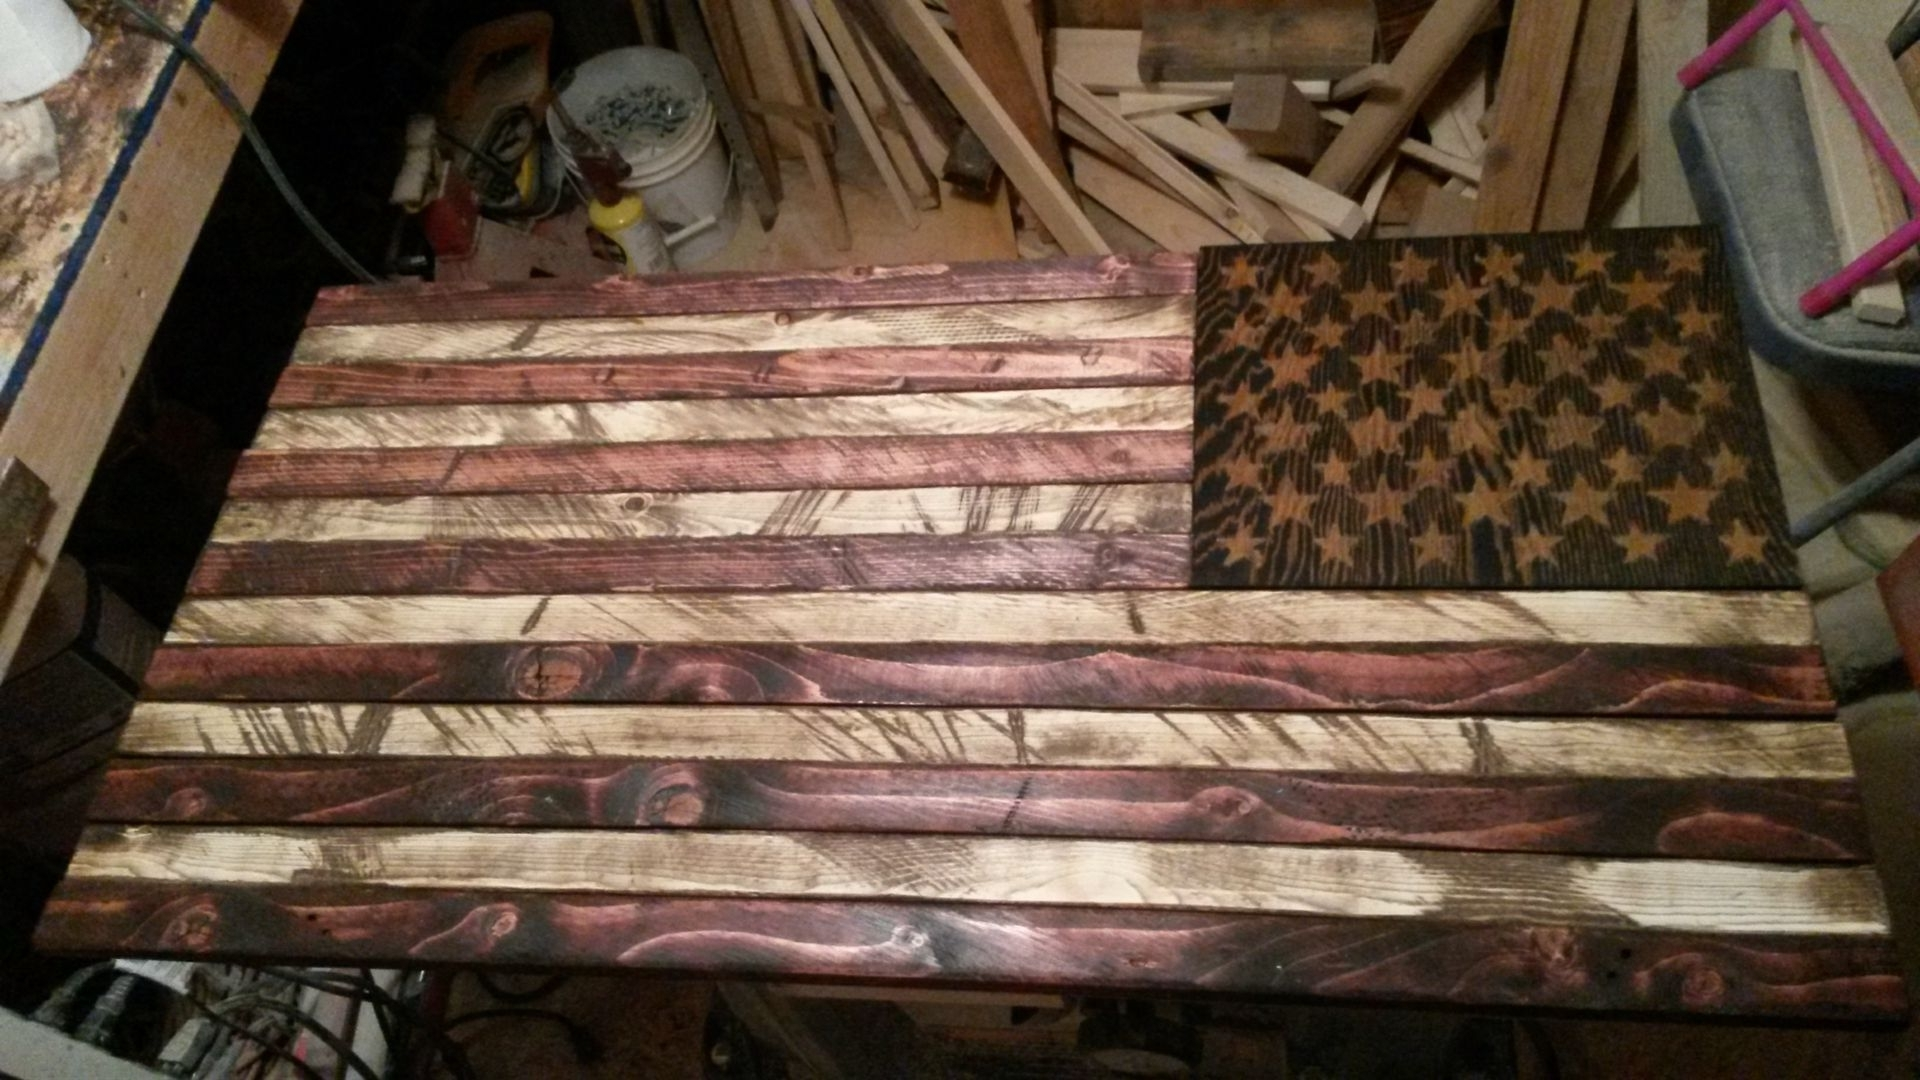 Buy A Handmade Rustic Distressed Wood American Flag, Made To Order Regarding Famous Rustic American Flag Wall Art (Gallery 6 of 20)